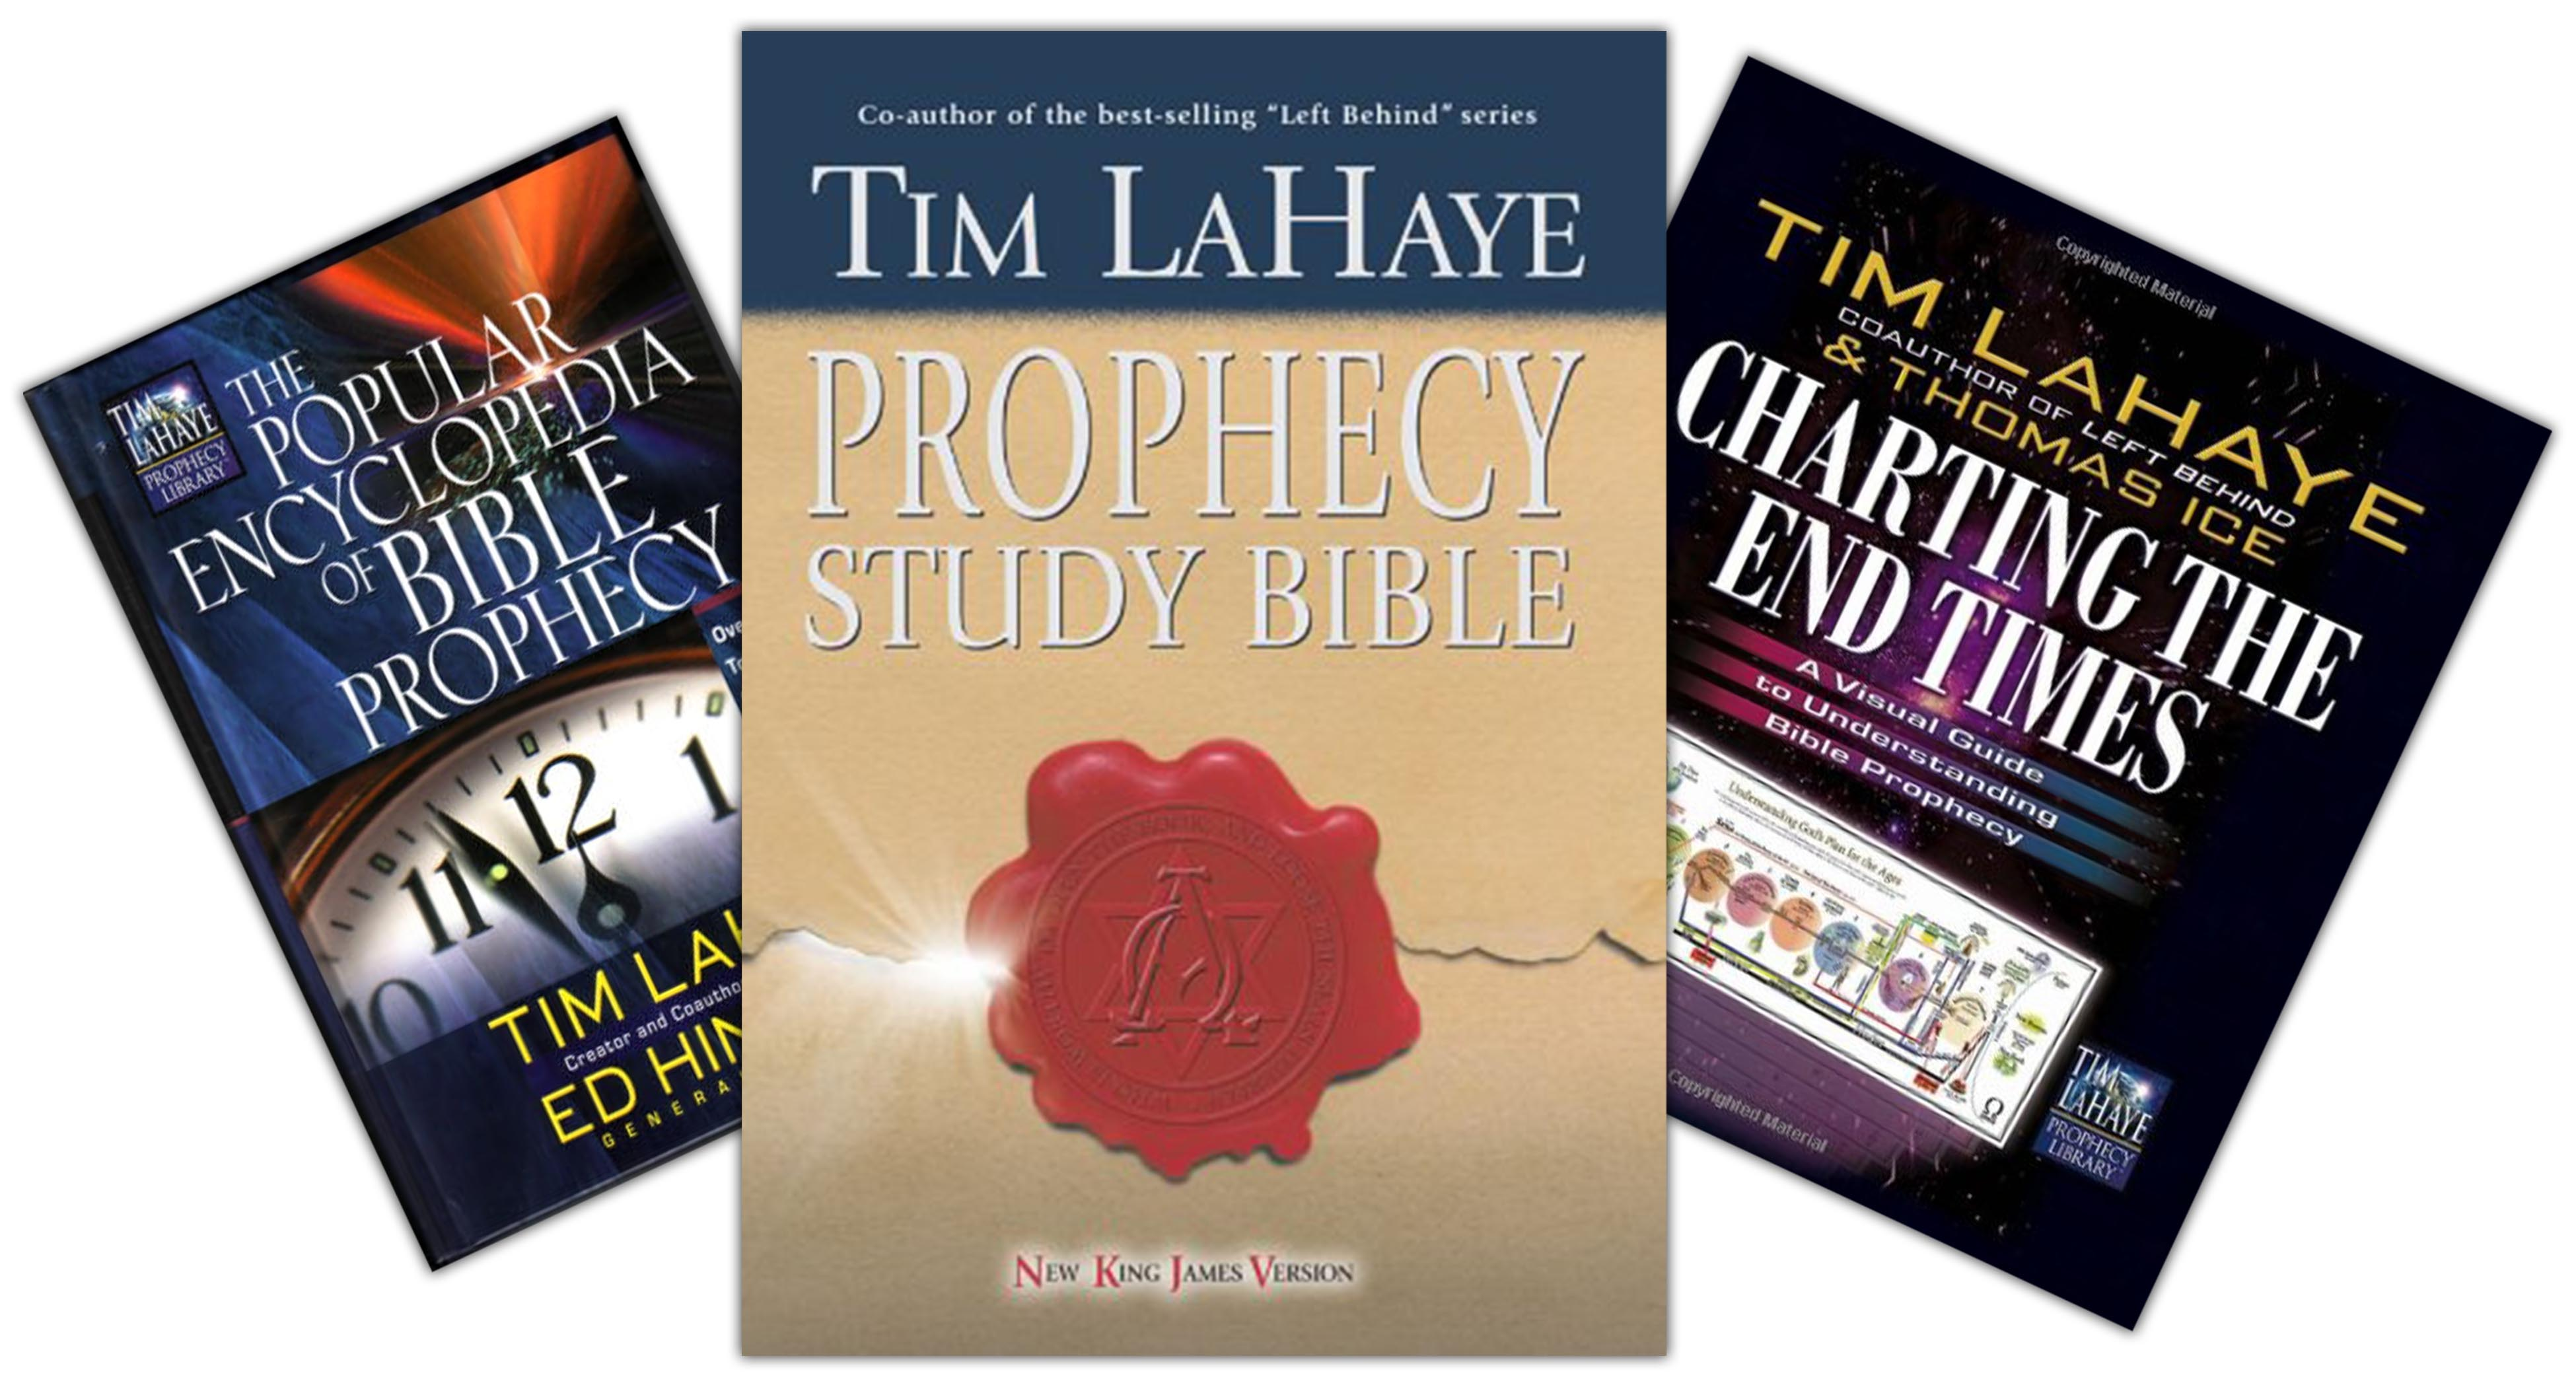 The Tim LaHaye Prophecy Bible Study Package (NKJV)